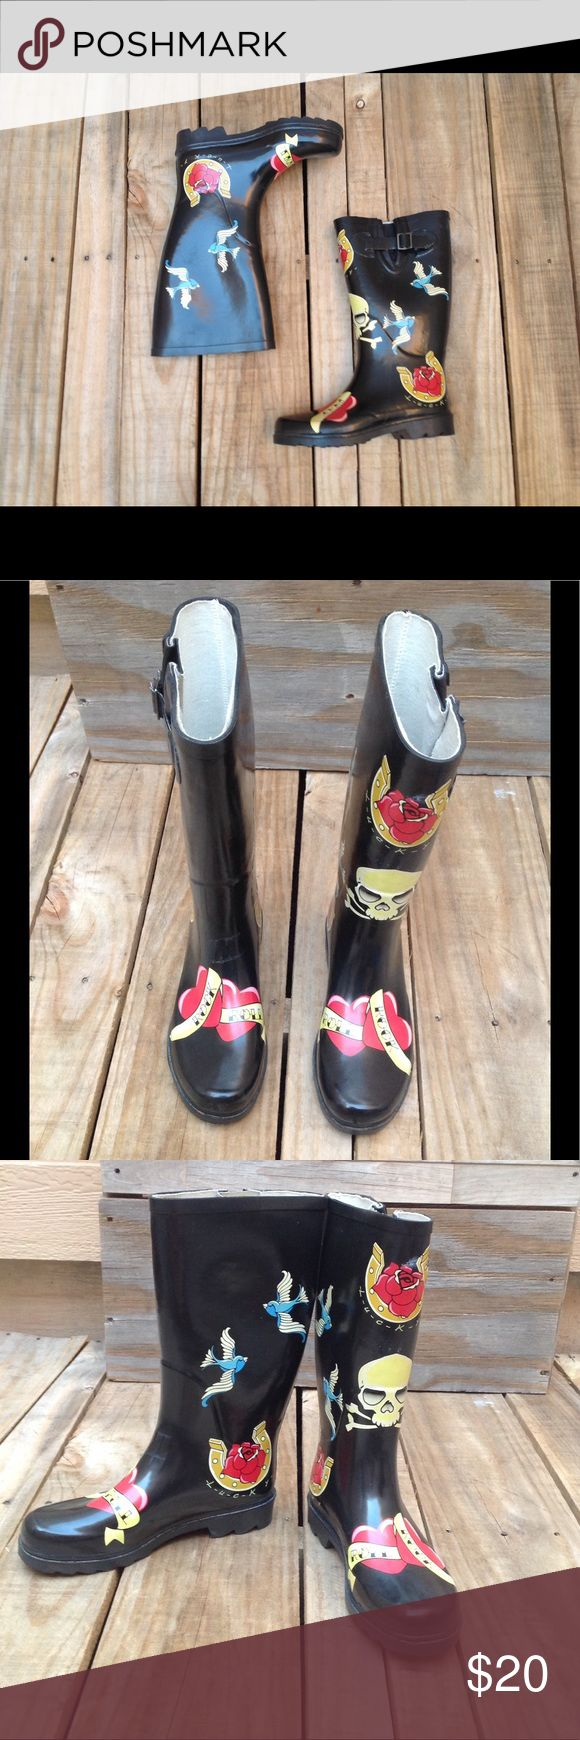 Lucky Brand Rockabilly Skull Wellies Rain Boots Lucky Brand Black Rubber Rain Boots or Wellies Rockabilly Tattoo Look with Skulls, Blue Birds Swallows, Horseshoe, Hearts. Skull is Only on The Left Boot. Fits One Size Small, Size Is An 8 BUT Fits As A Size 7 May Fit a 7 1/2!!! Gently Loved! Lucky Brand Shoes Winter & Rain Boots